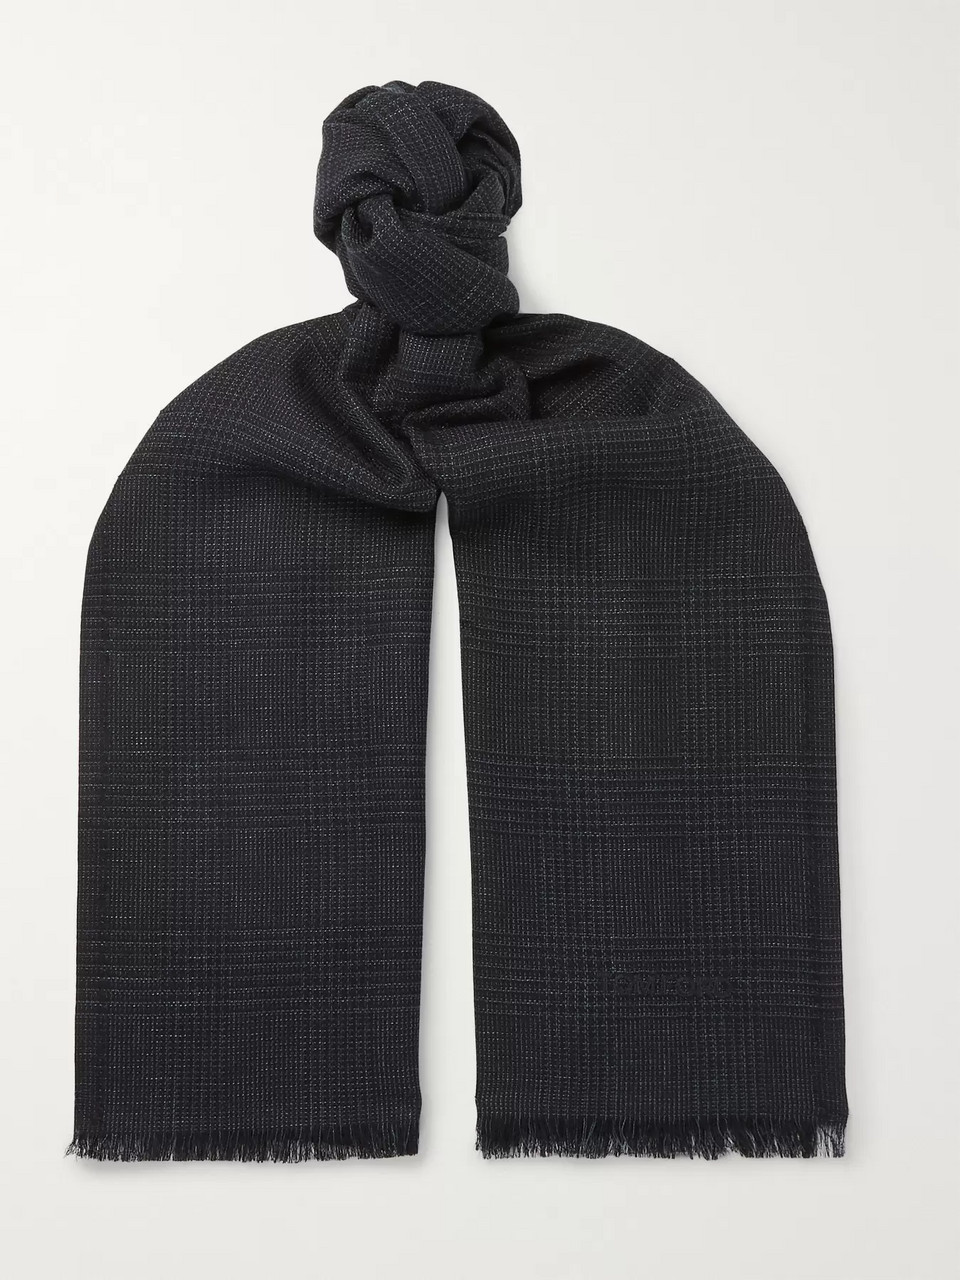 TOM FORD Fringed Prince of Wales Checked Mohair, Wool, Linen and Silk-Blend Scarf